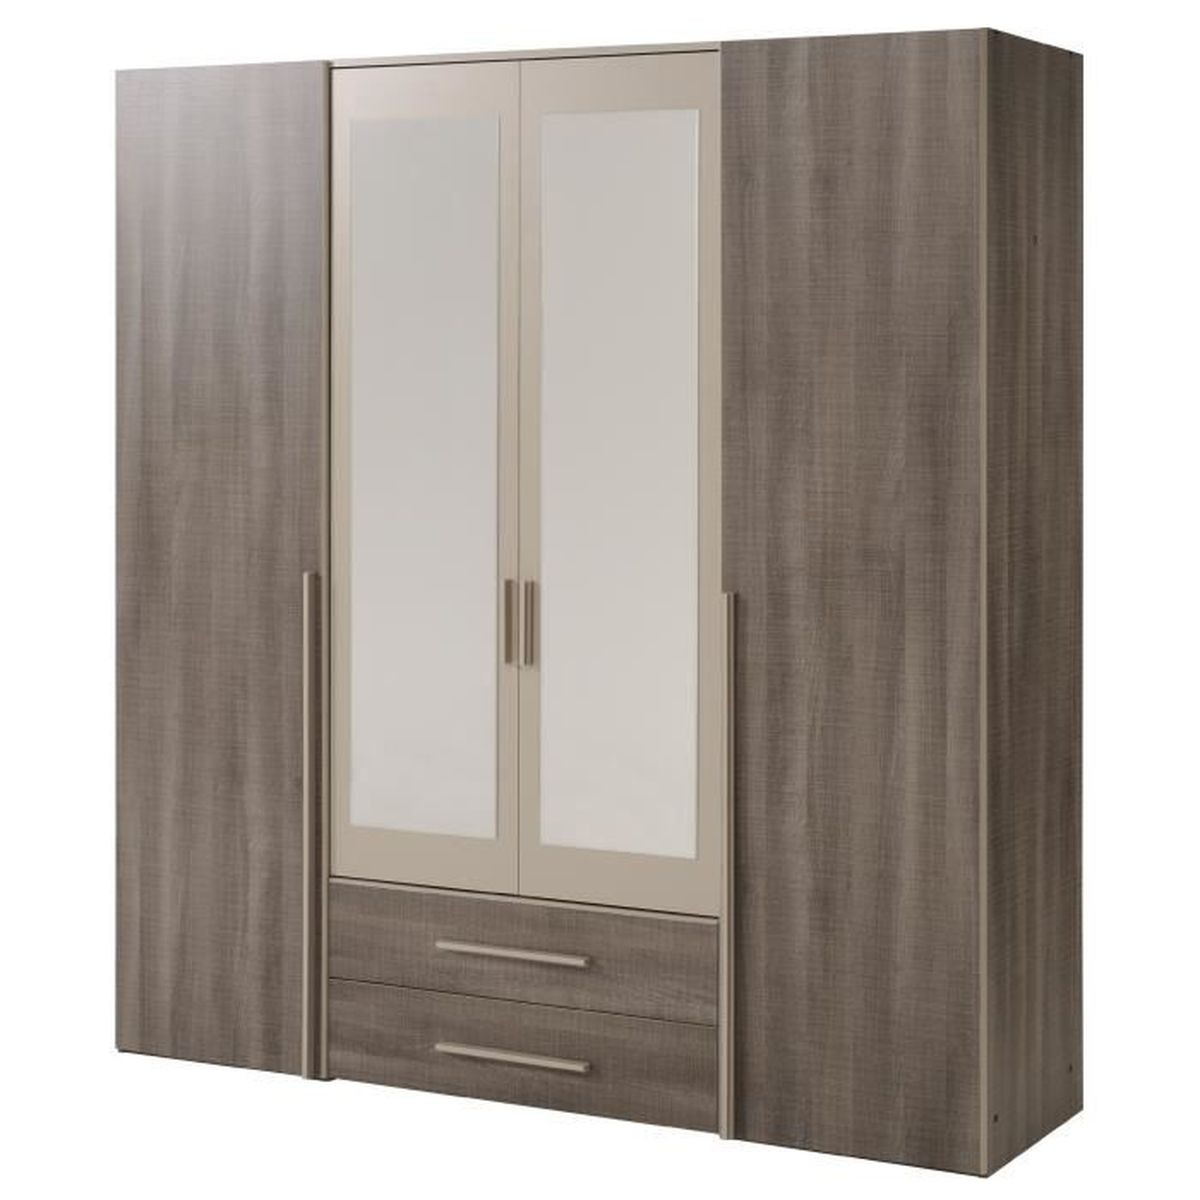 Armoire chambre adulte pas cher top armoire chambre for Armoire de chambre a coucher pas cher